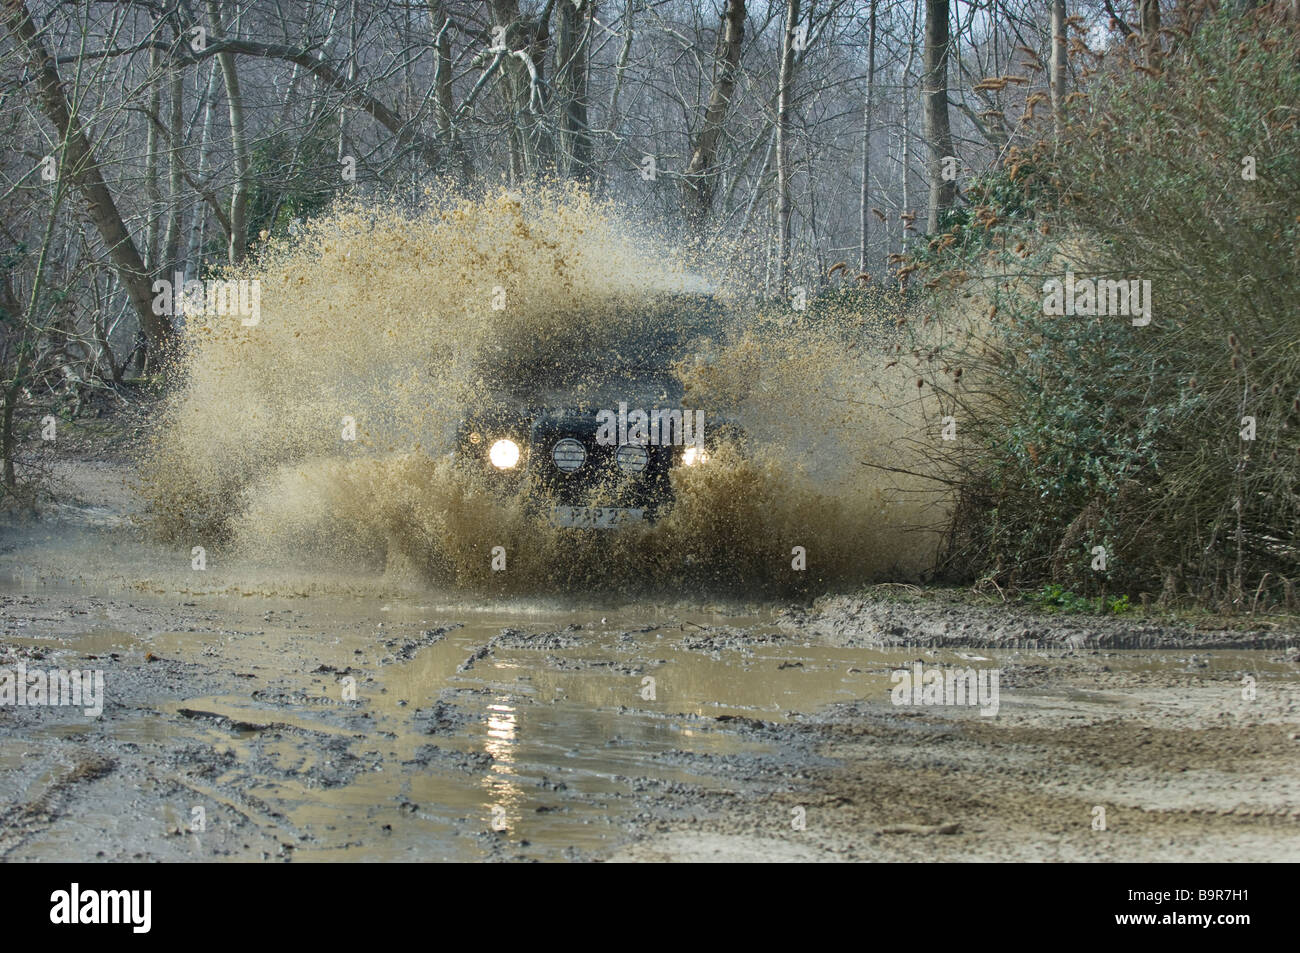 A Land Rover Defender 90 splashes through a flooded track in woodland in Slindon West Sussex UK during an Off Road - Stock Image